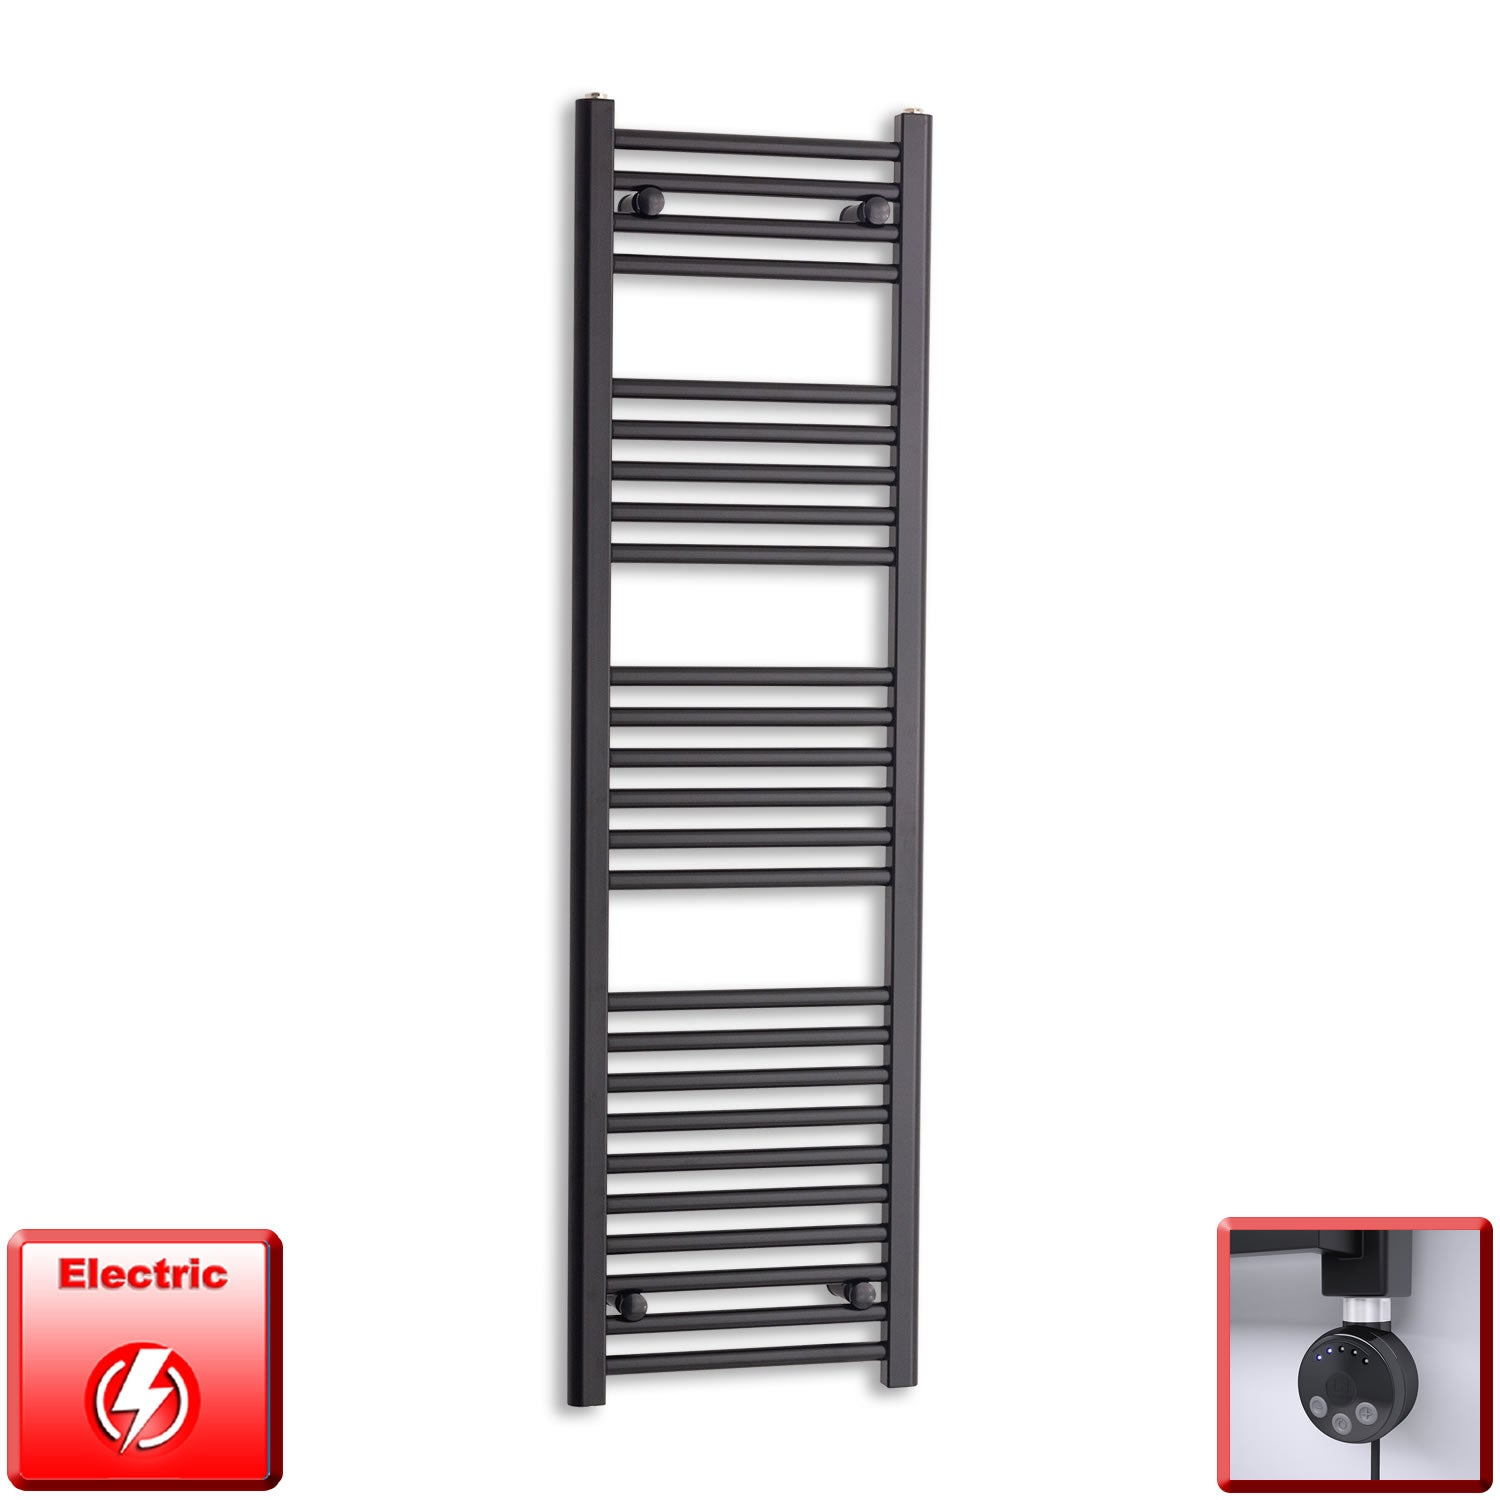 400mm Wide 1400mm High Pre-Filled Black Electric Towel Rail Radiator With Thermostatic MEG Element